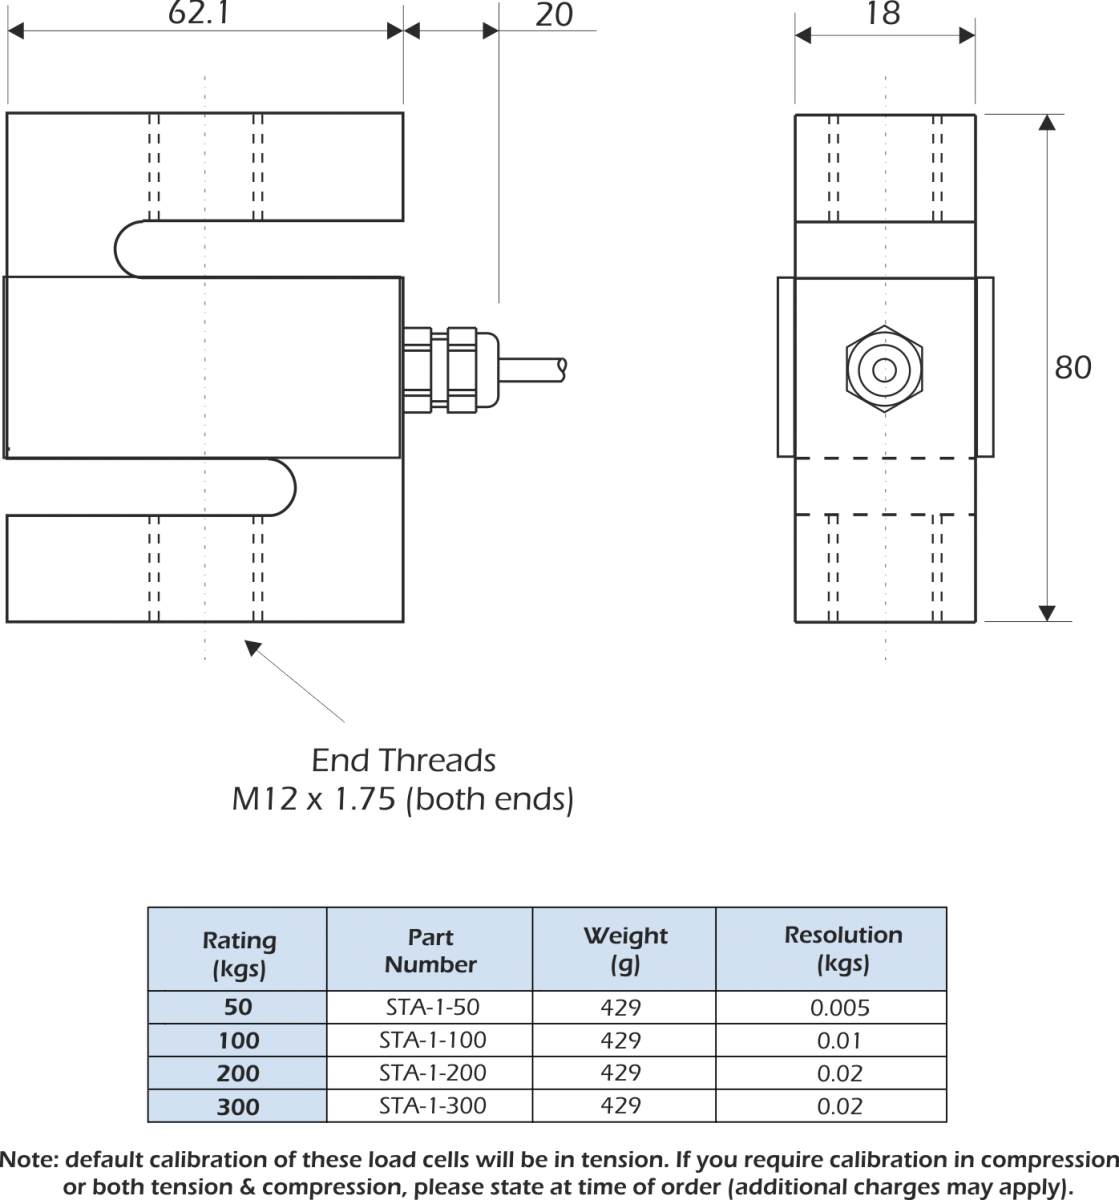 sta-1 load cell dimensions